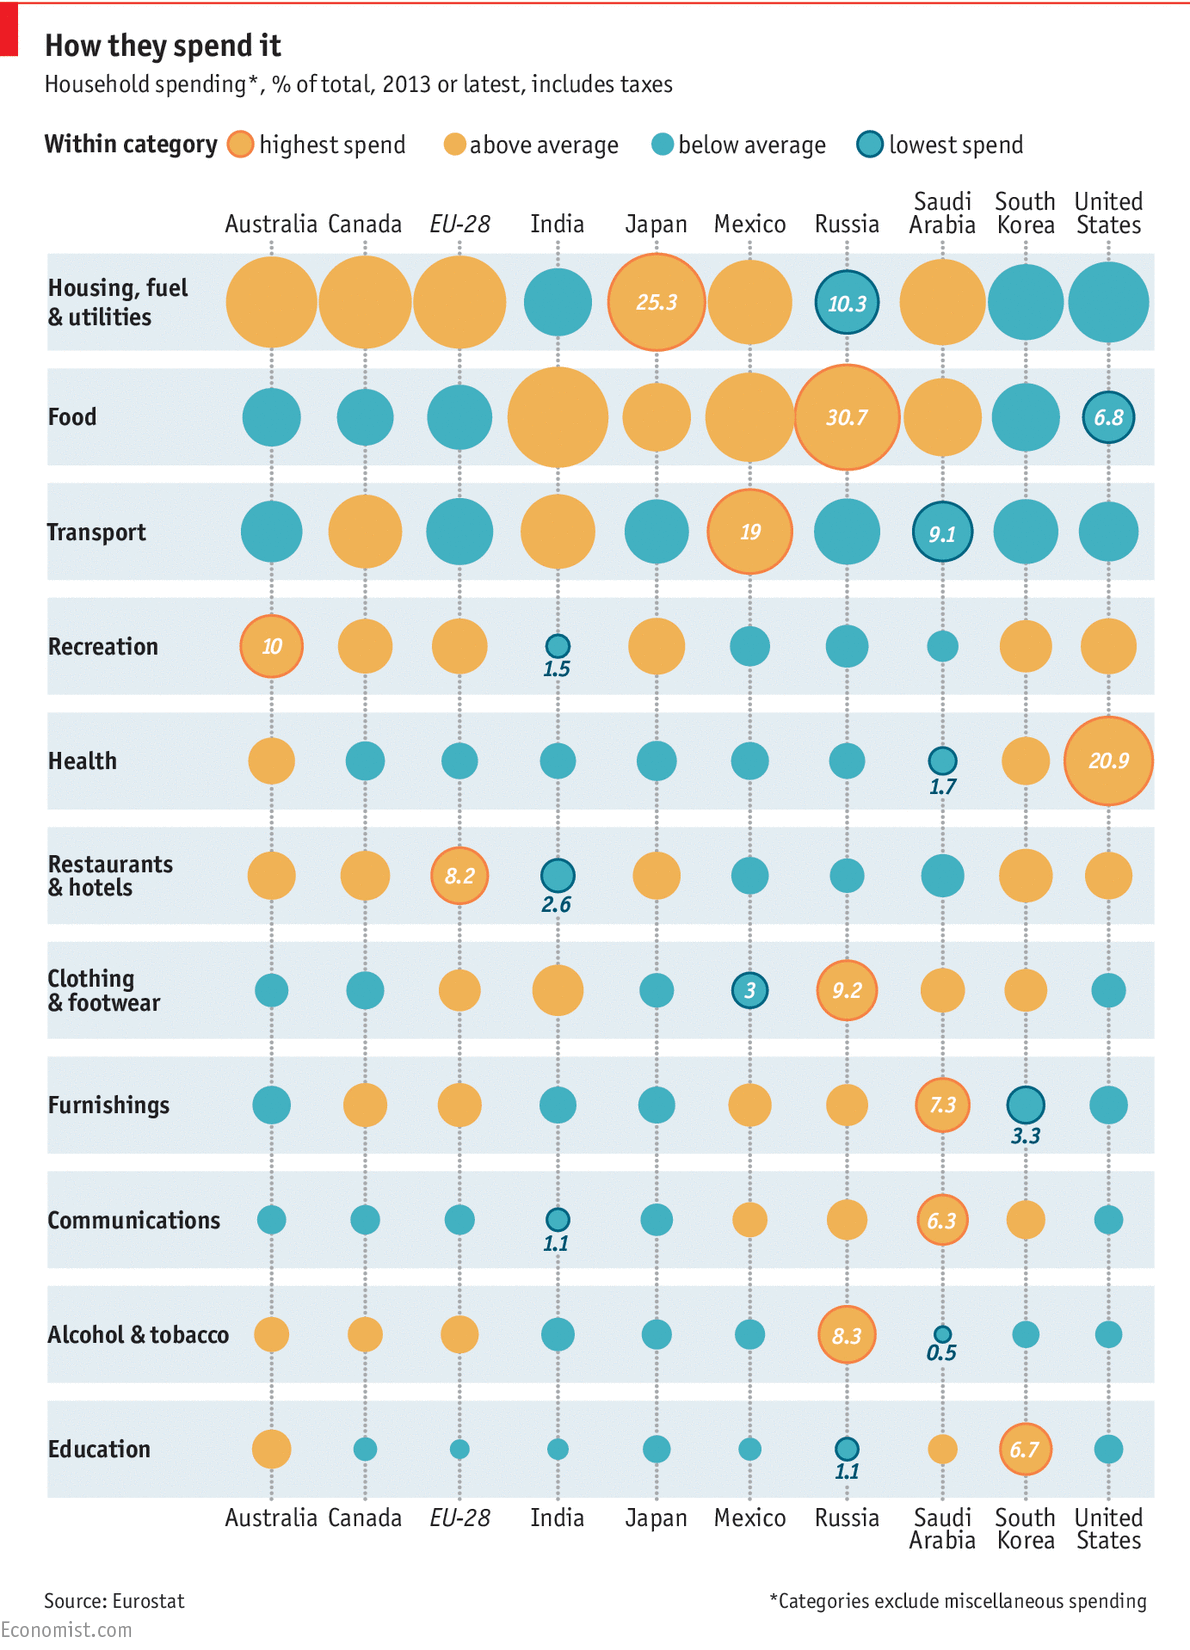 How Do People in Different Countries Spend Their Money?